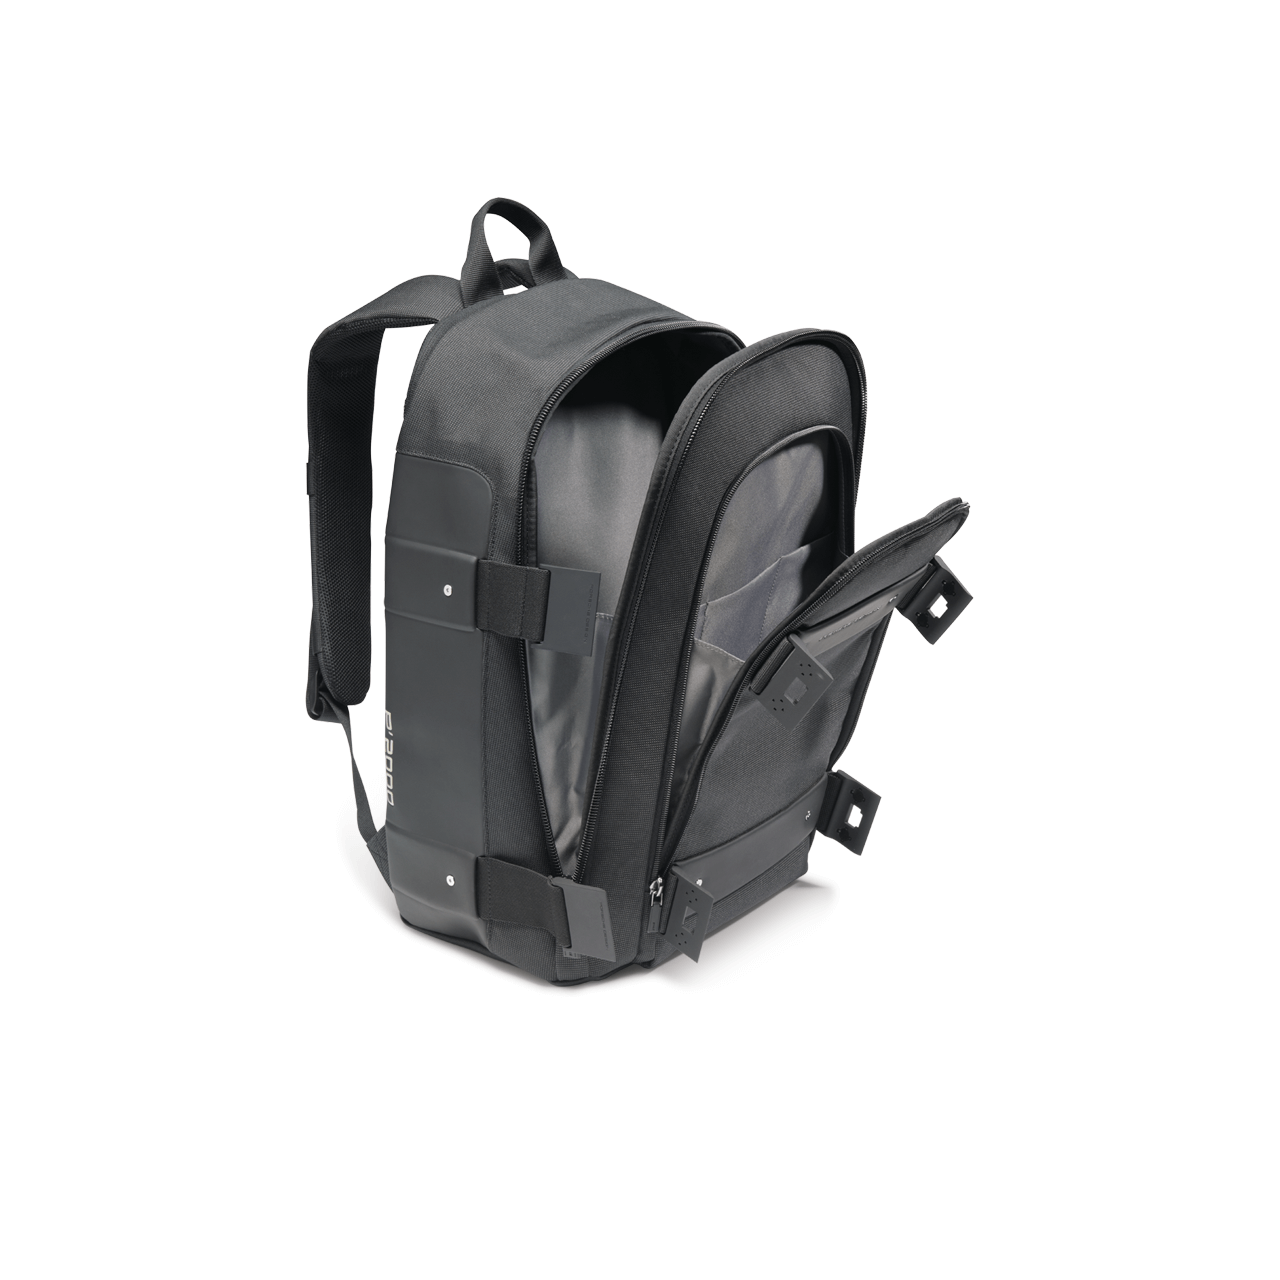 CARGON 2.5 BACKBAG M - фото 2